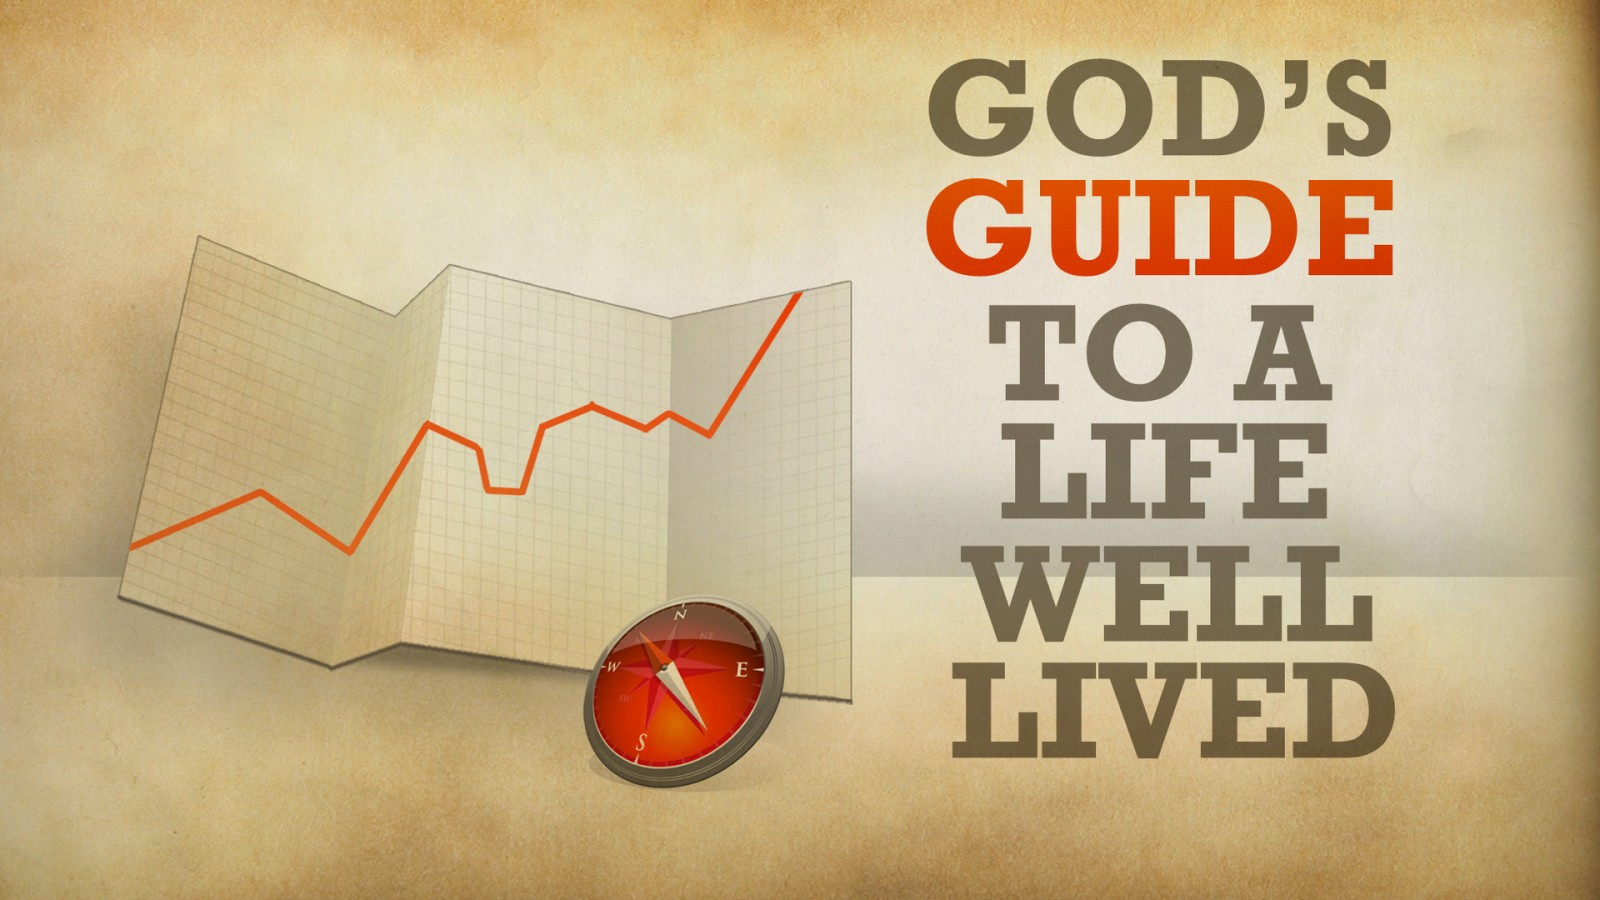 god_s_guide_to_a_life_well_lived-title-2-Wide 16x9